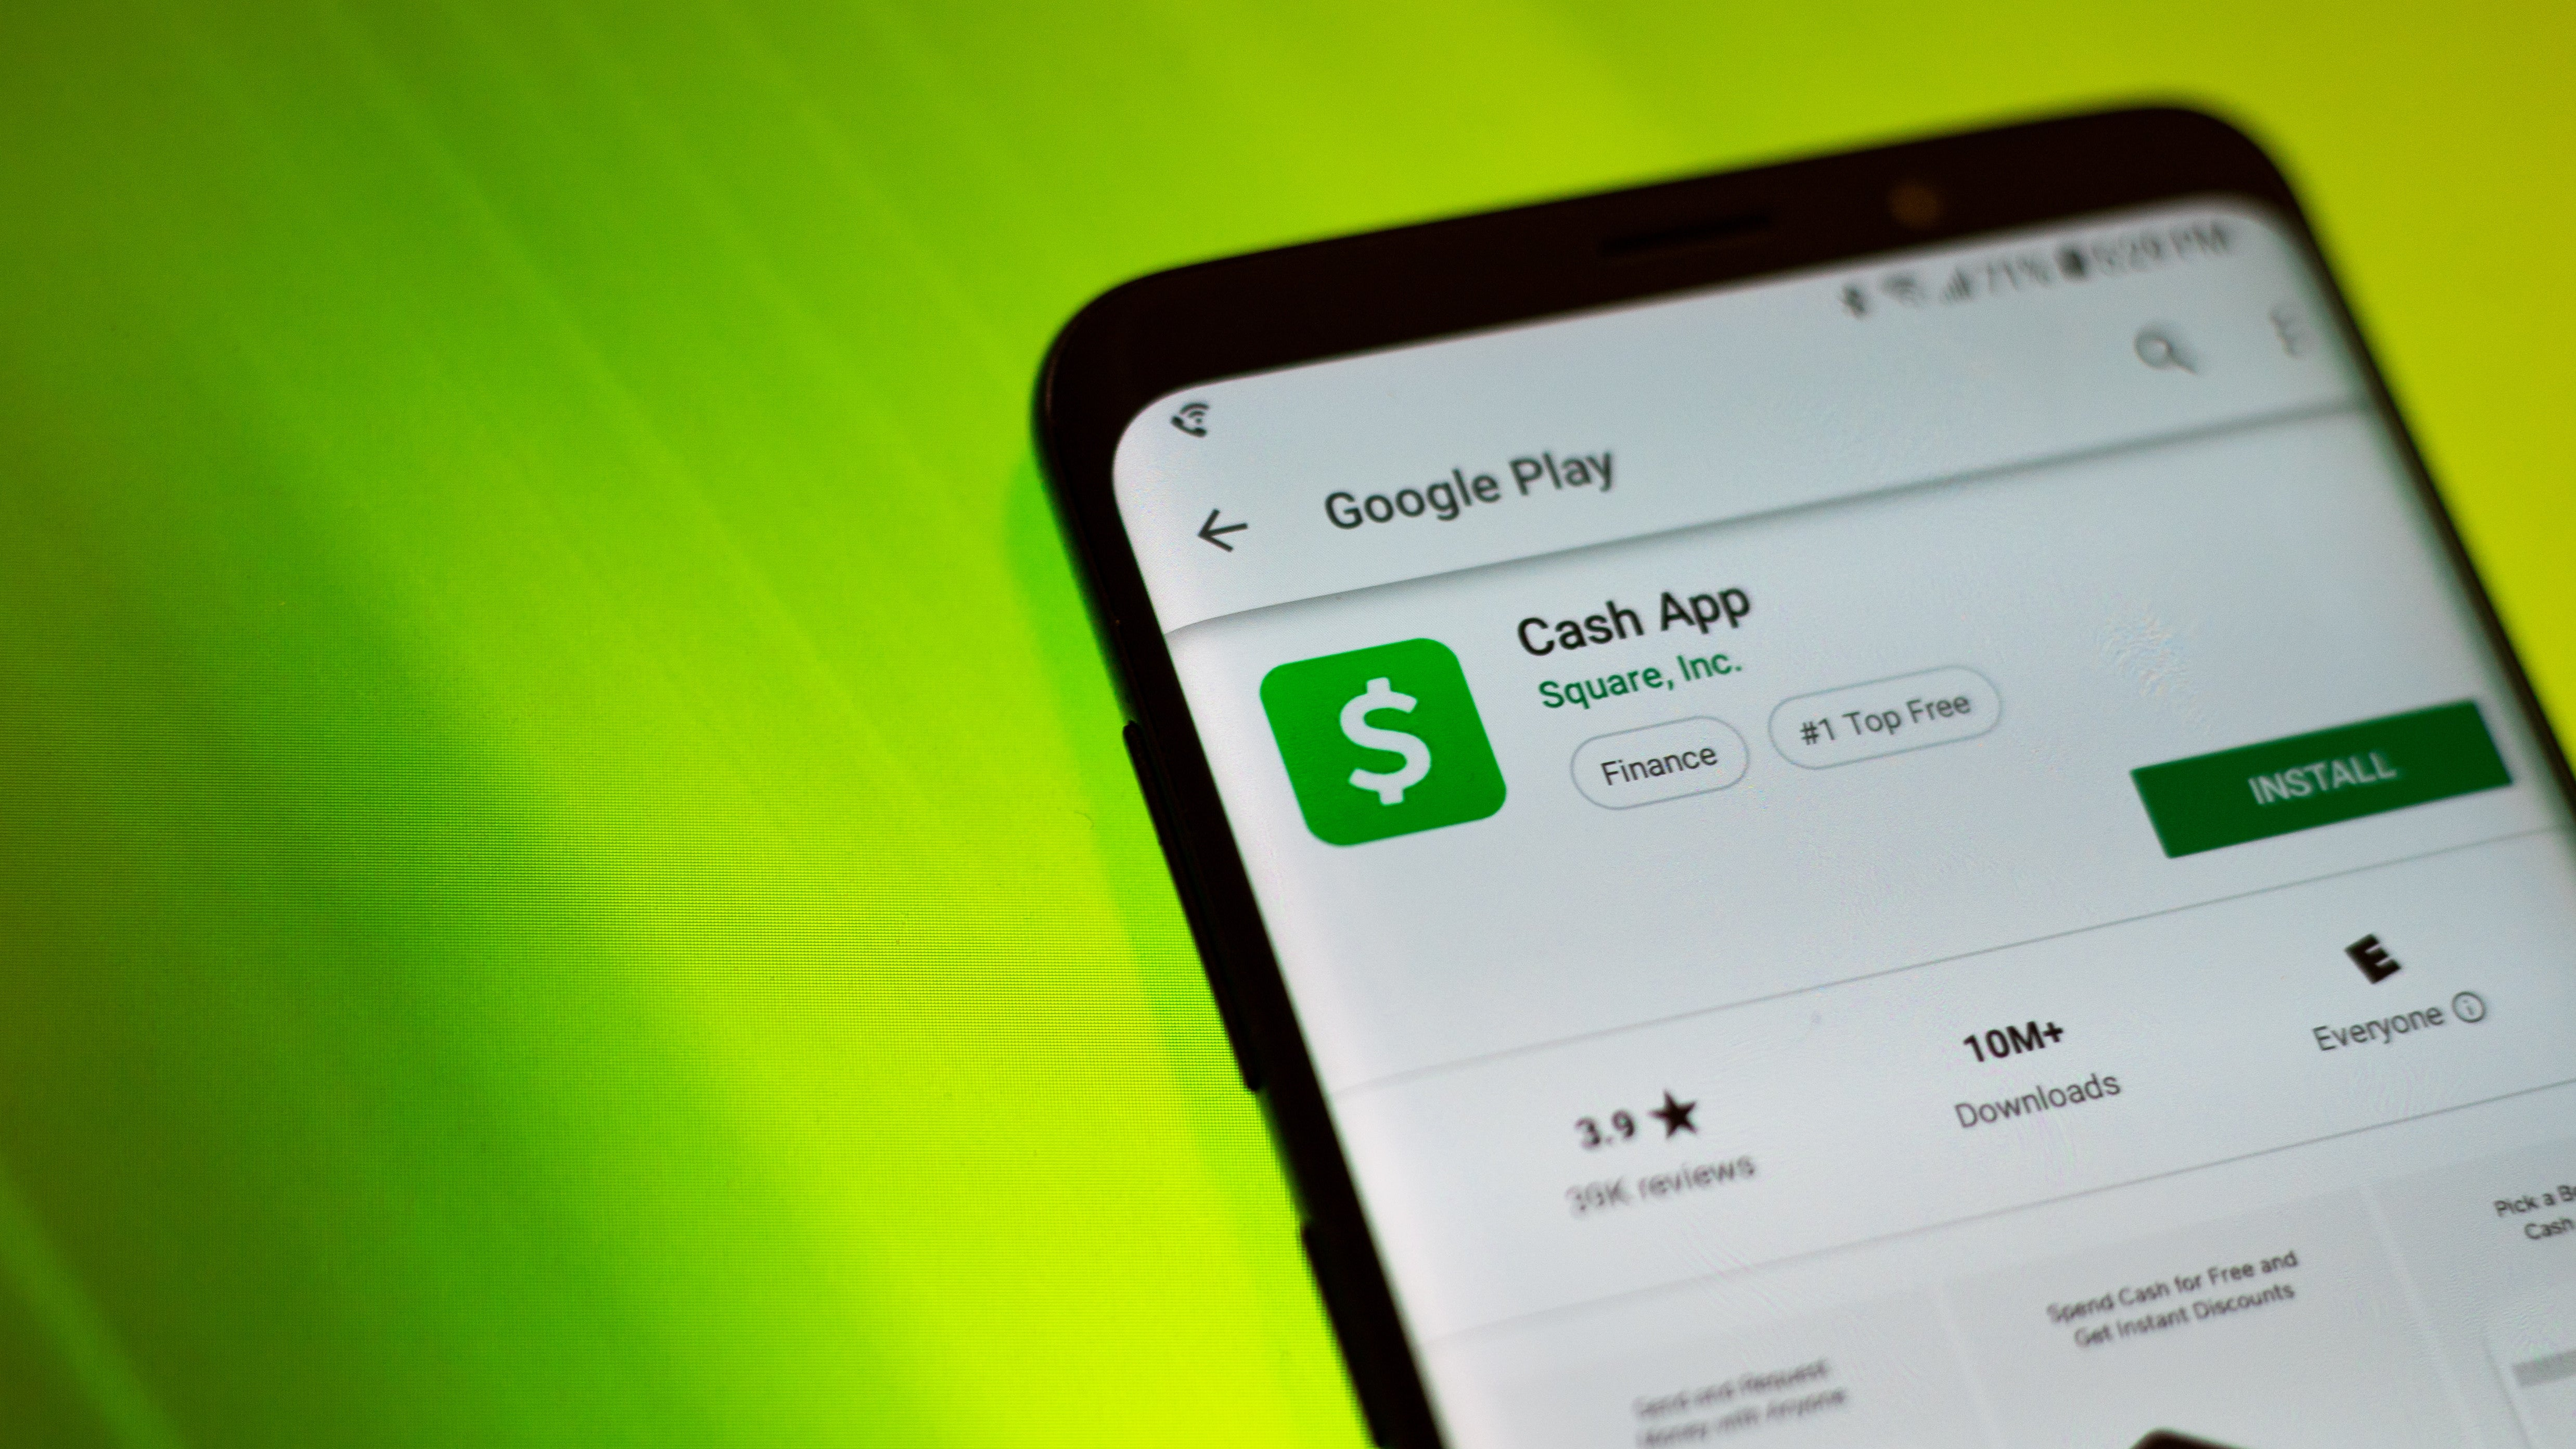 Watch Out For Scams Targeting Cash App Users